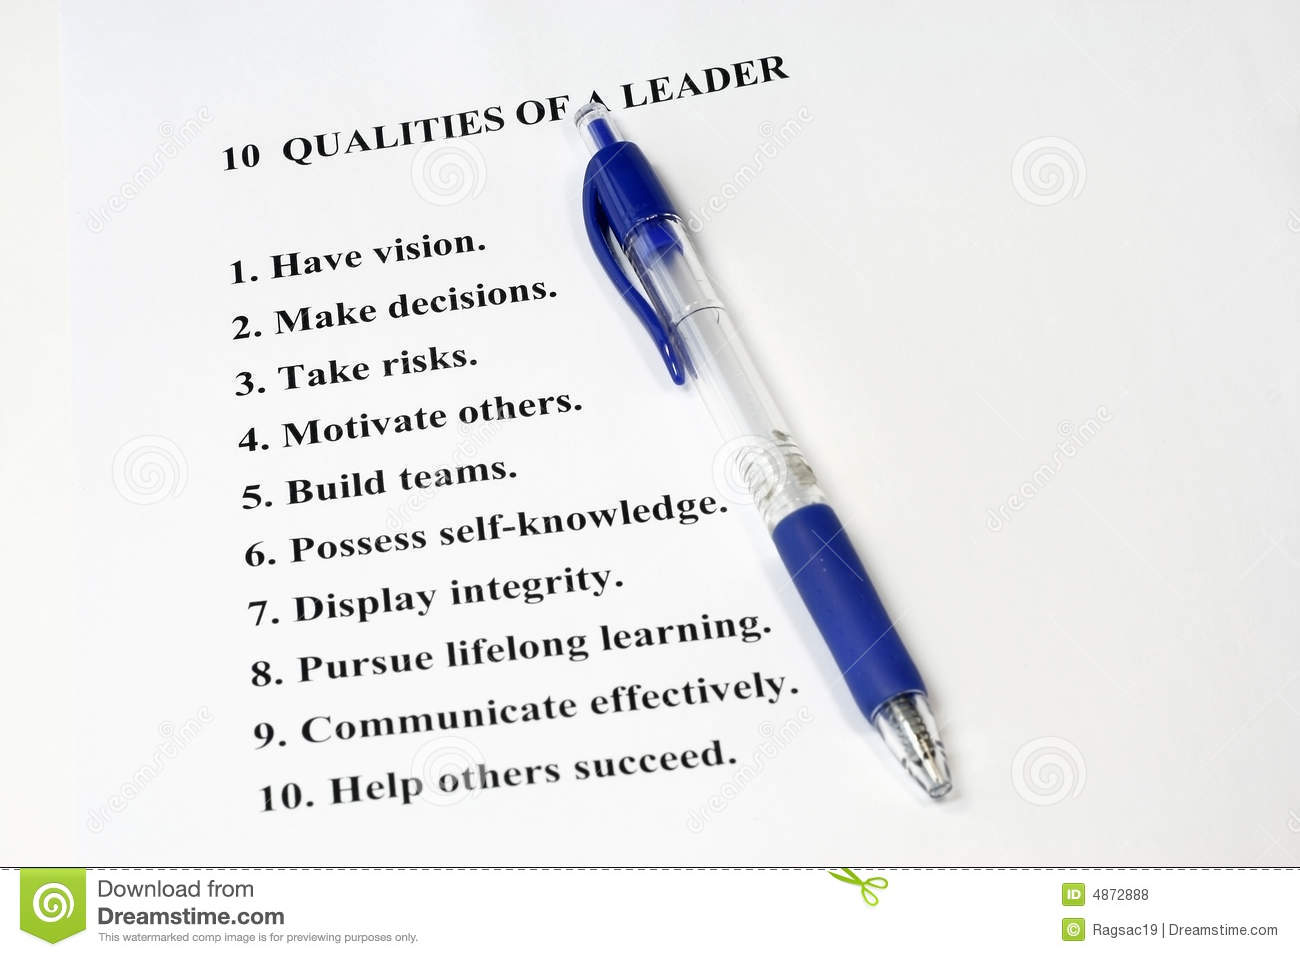 essays on qualities of a leader Qualities of a good leader essay - proposals and essays at most affordable prices experienced writers engaged in the service will fulfil your task within the.